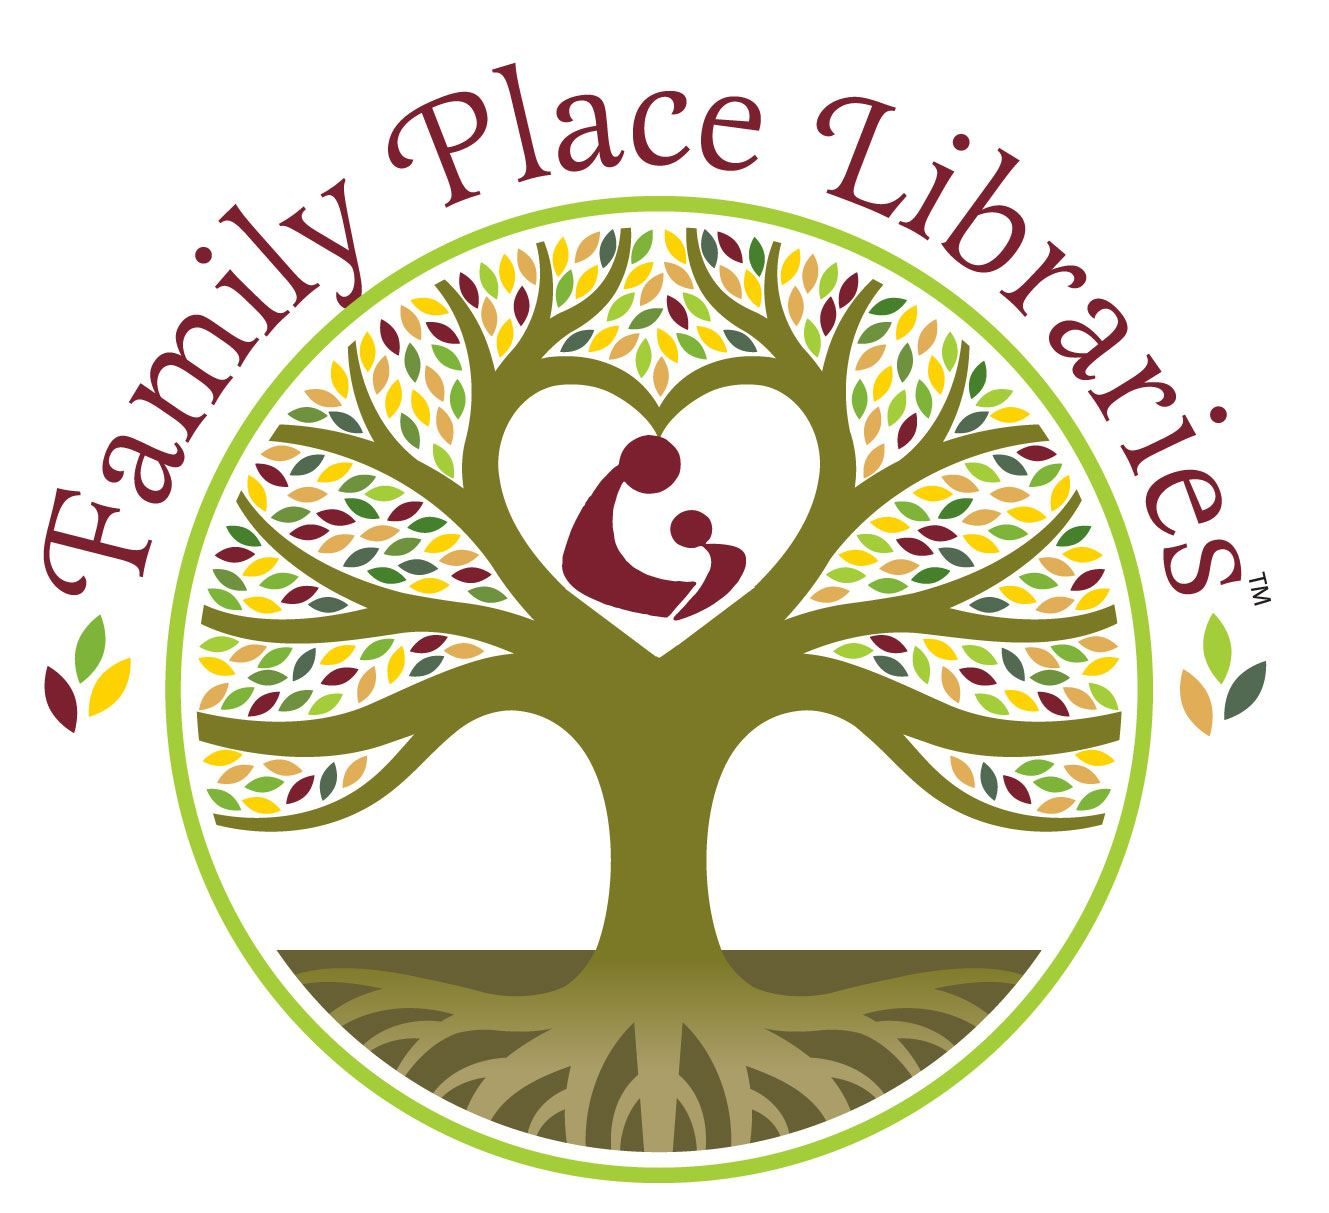 Family Place Library logo